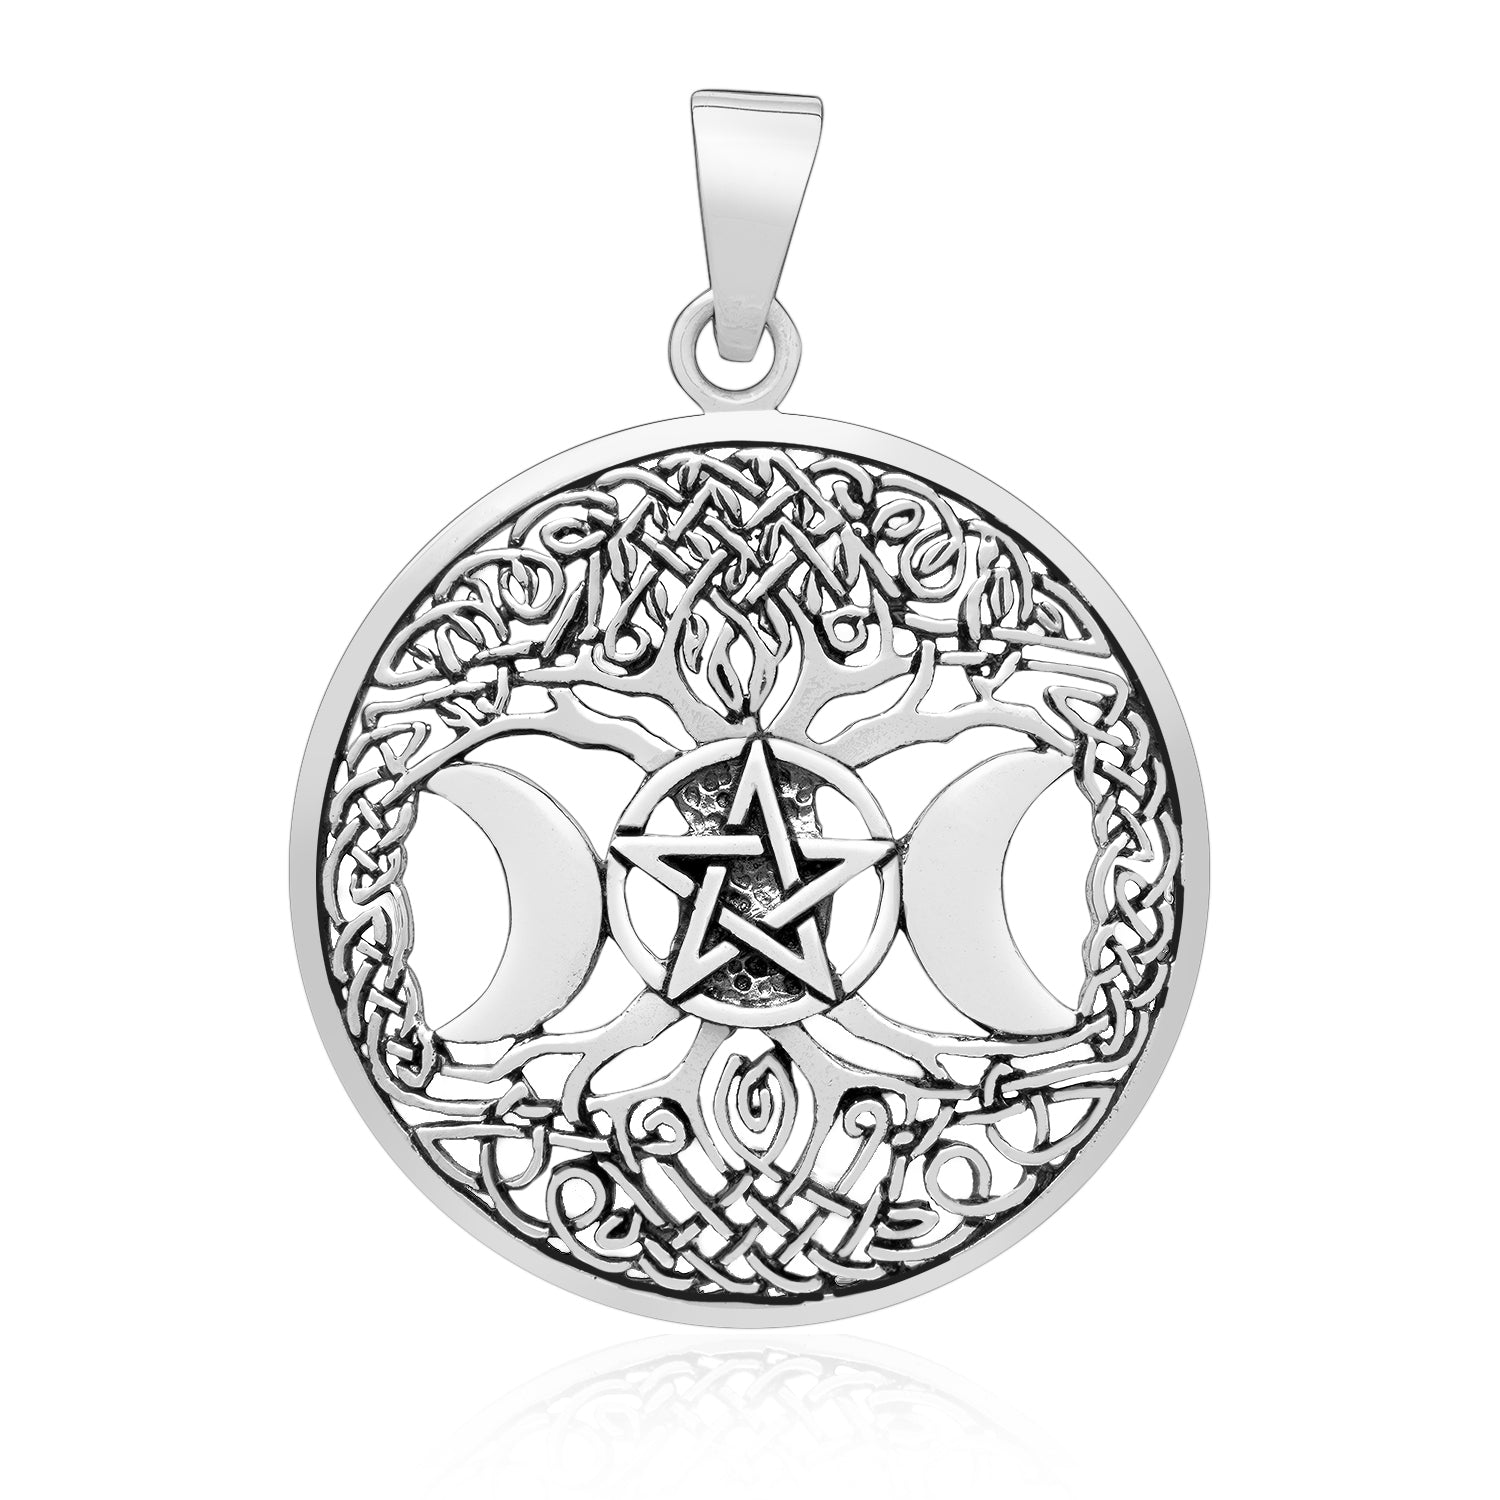 925 Sterling Silver Triple Moon Goddess Pendant with Yggdrasil